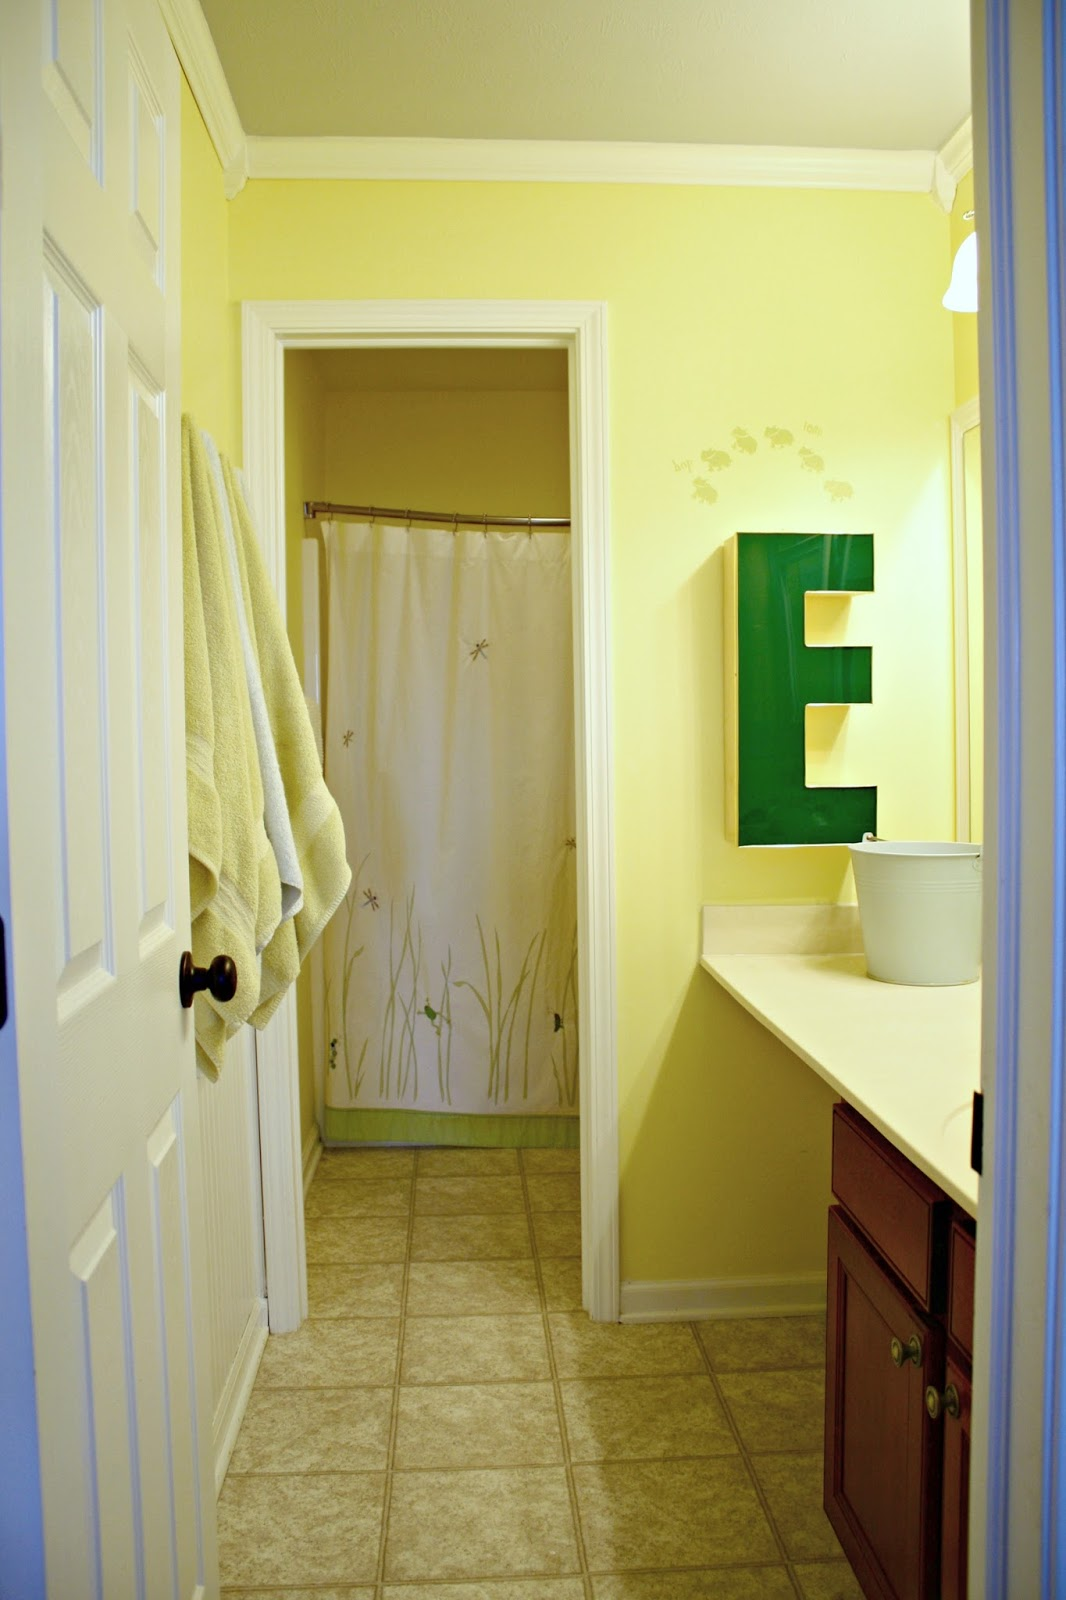 Bathroom Yellow Paint a simple bathroom makeover (paint is the bomb!) from thrifty decor